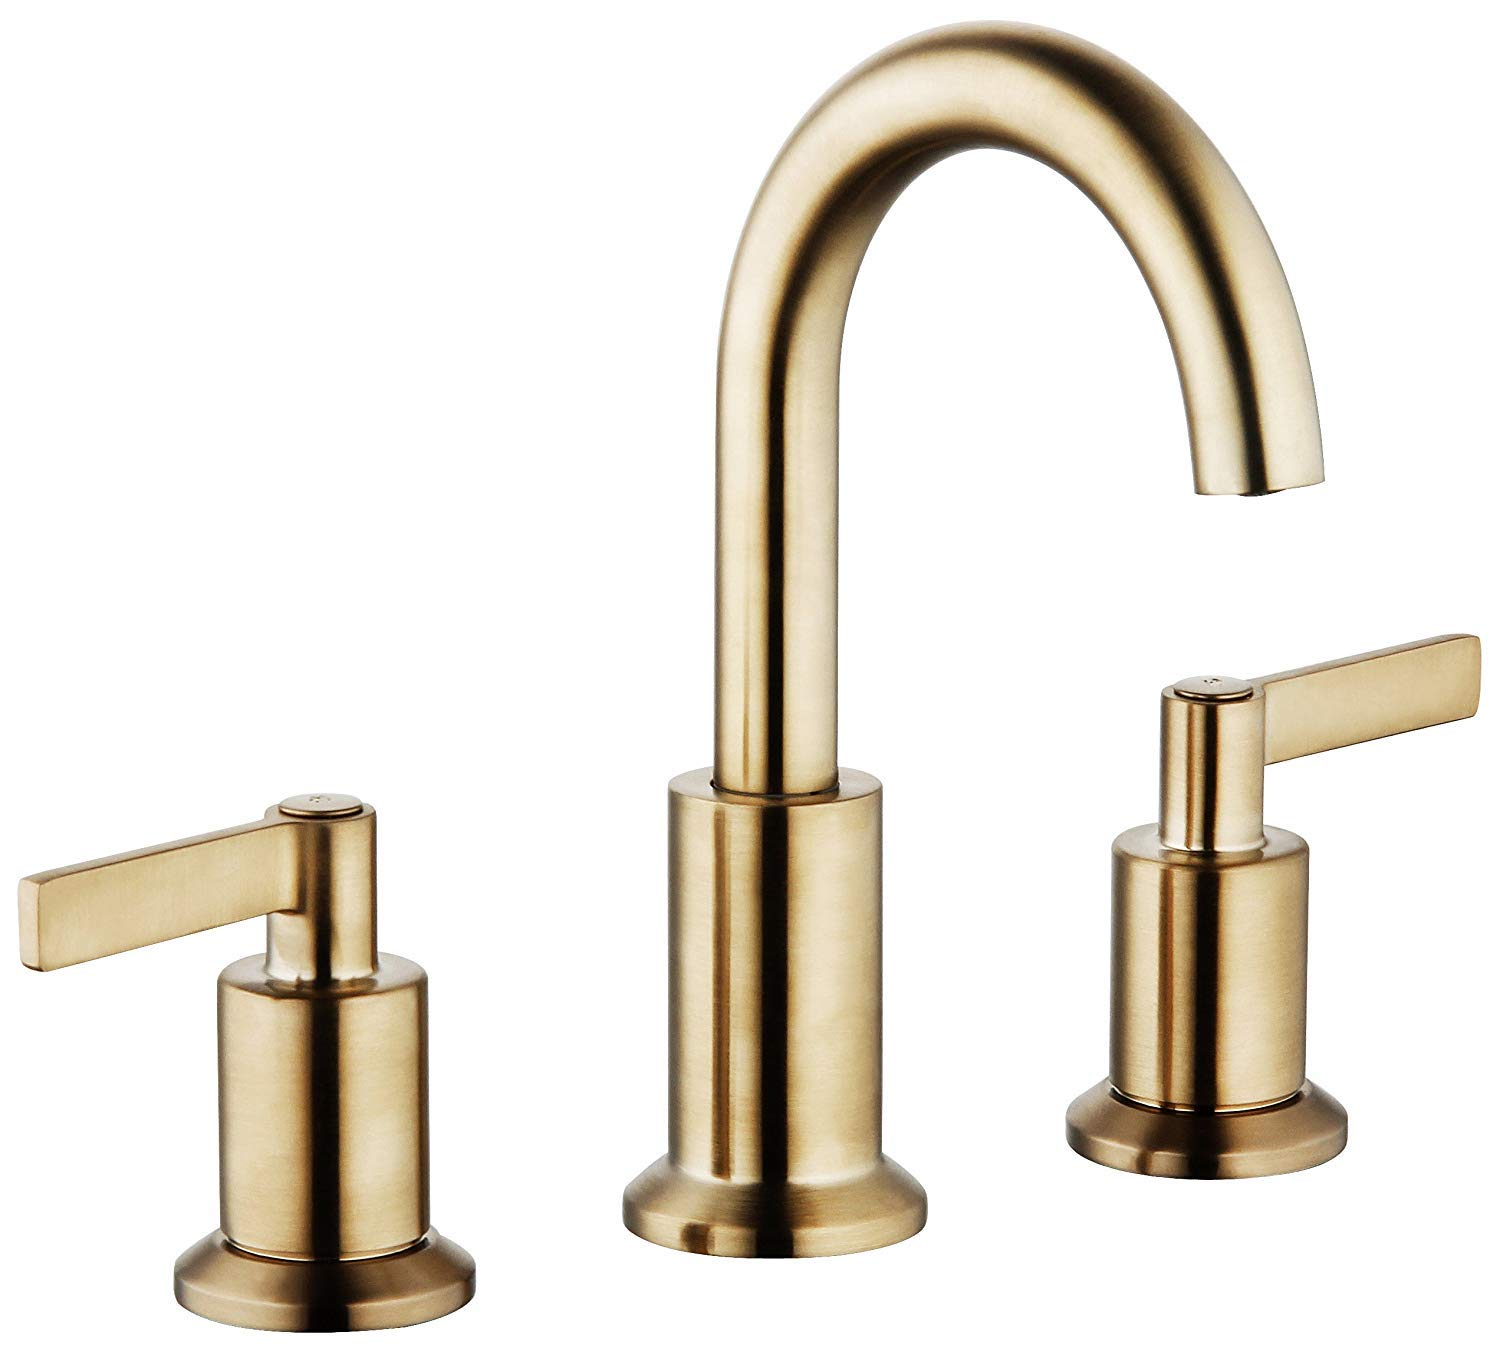 Derengge LFS-0188-CS 8'' Two Handle Widespread Bathroom Faucet with Pop up Drain, Meets UPC cUPC NSF AB1953 Lead Free, French Brushed Bronze Finished, Brushed Gold Finished by Derengge